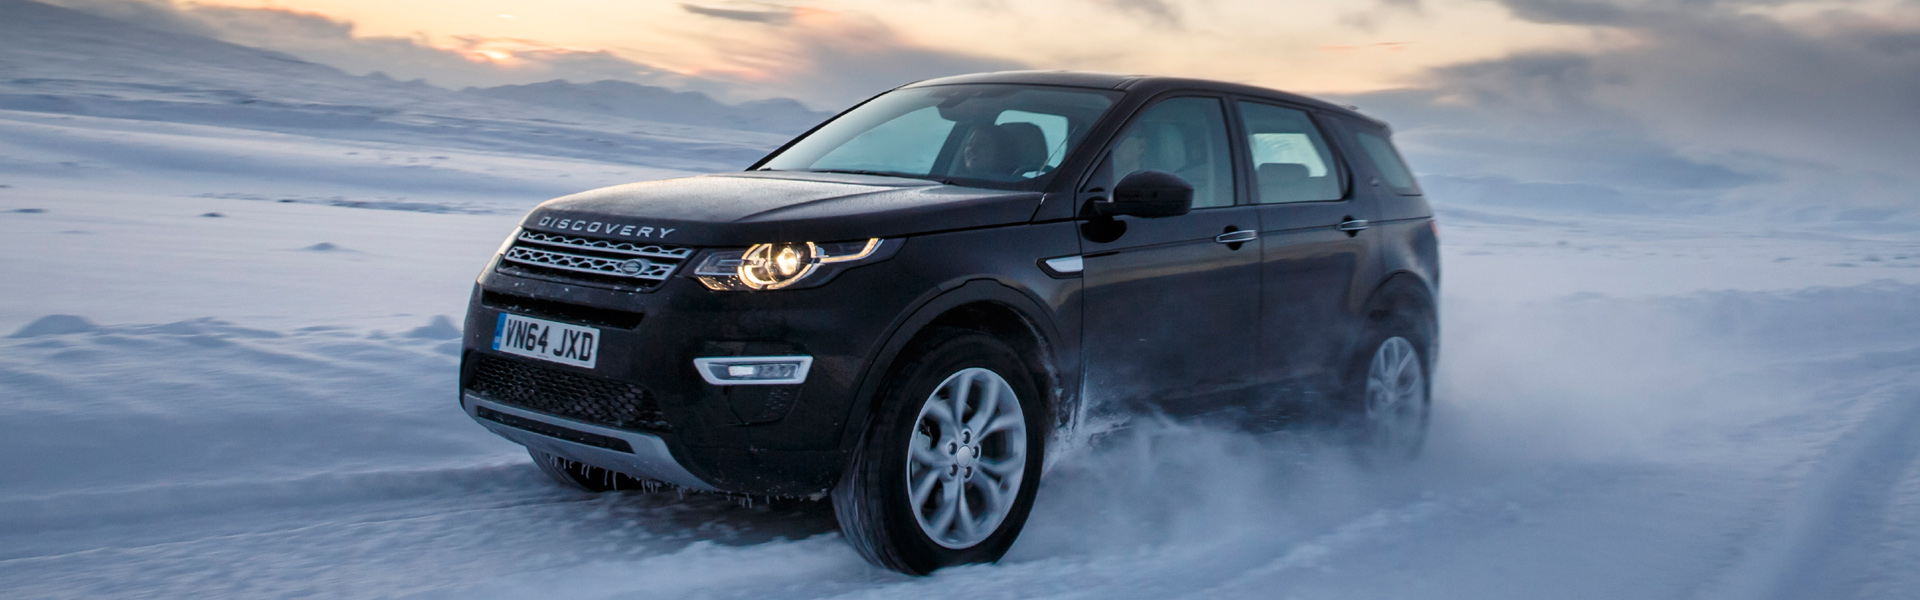 Land Rover Discovery Sport sneeuwkettingen